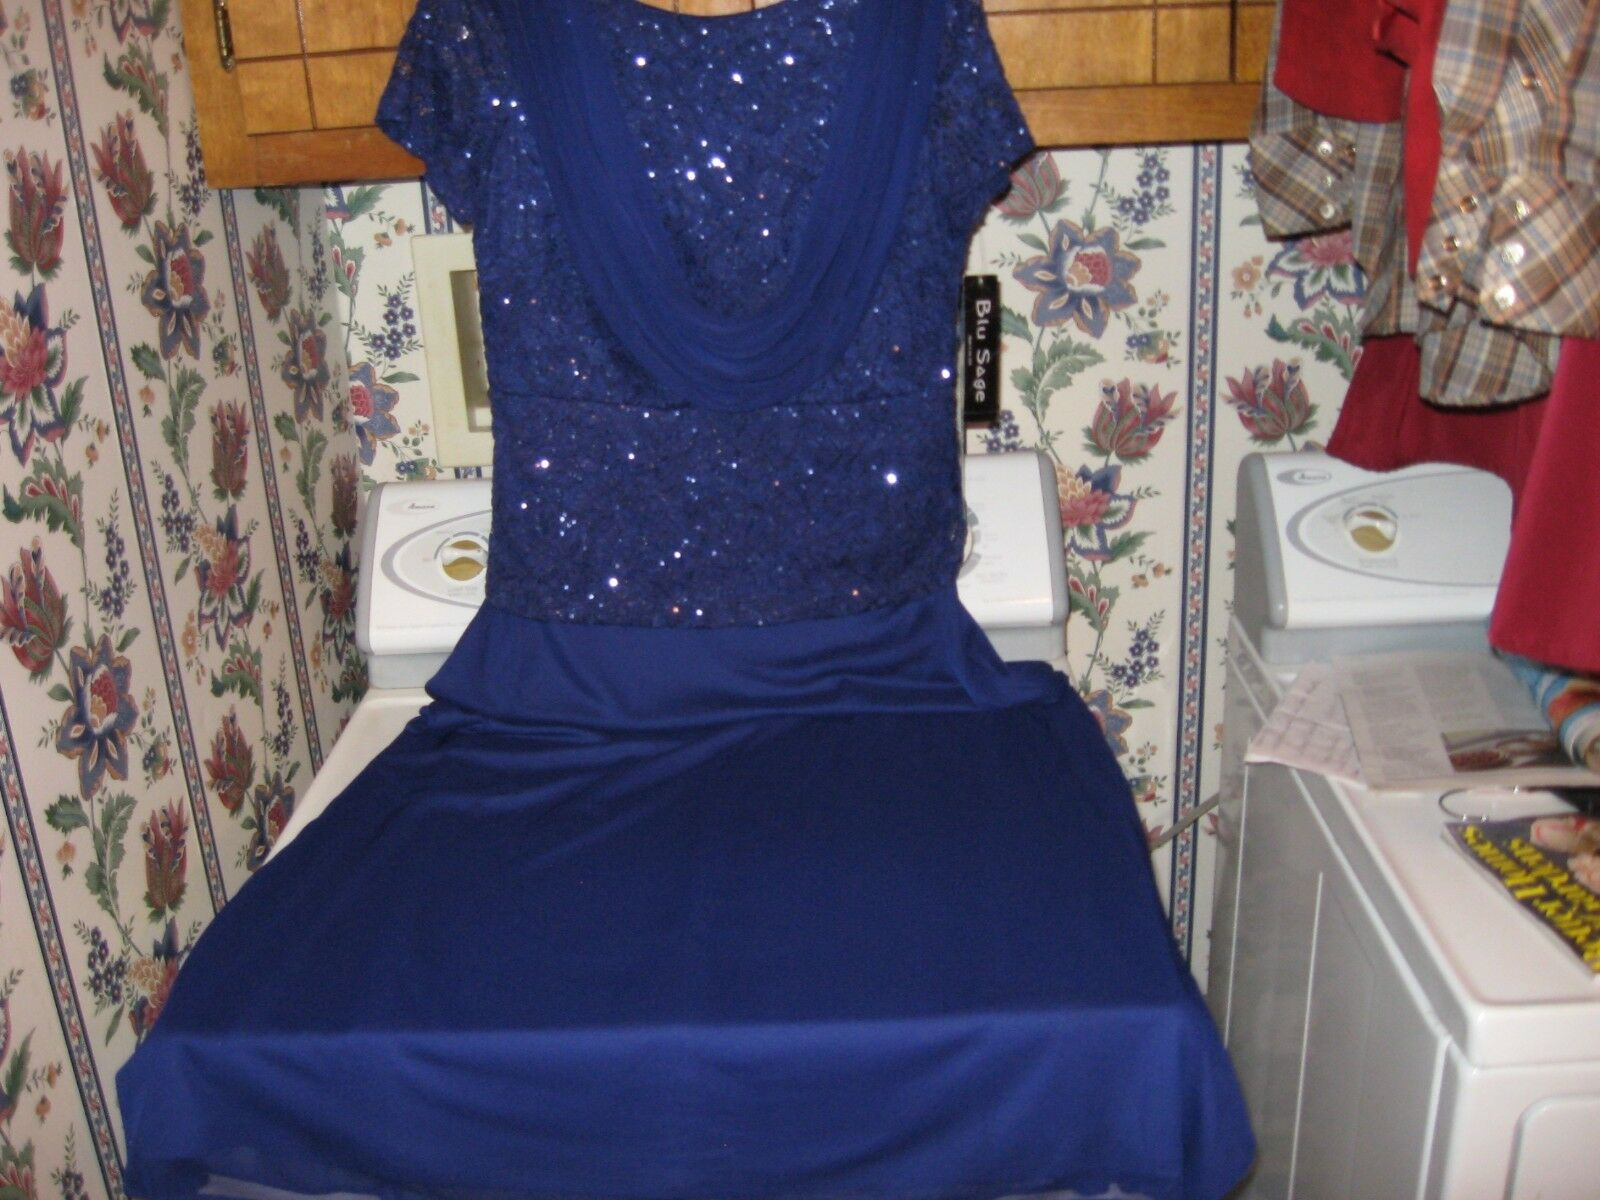 WOMENS FORMAL EVENING GOWN DRESS SIZE 12 PROM WEDDING BRIDESMAID NEW RET.